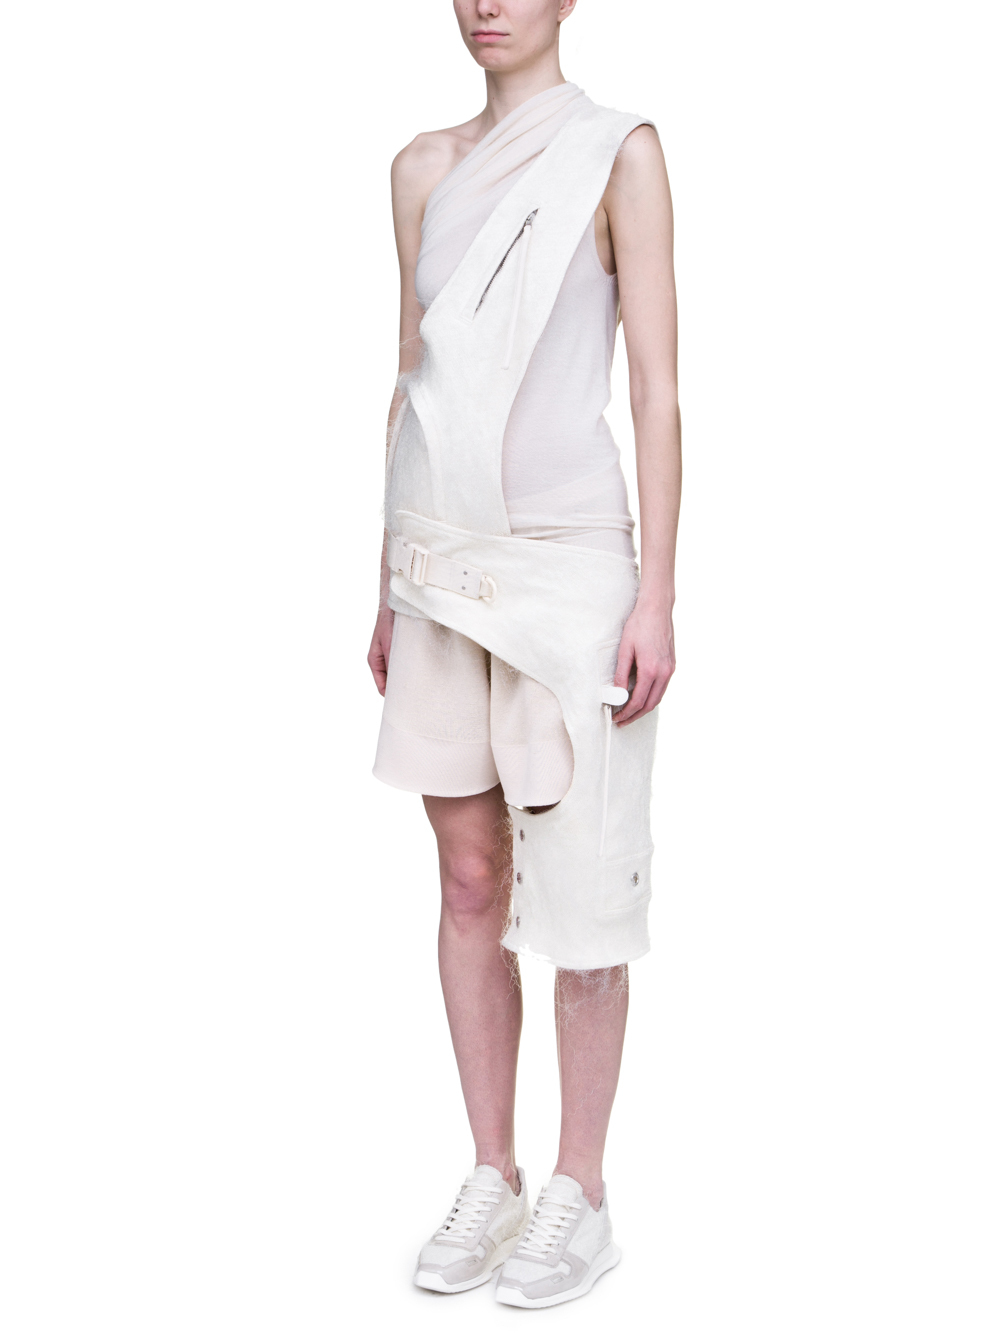 RICK OWENS OFF-THE-RUNWAY CROSS CARGO CHAP IN NATURAL PLASTIC SHEARLING